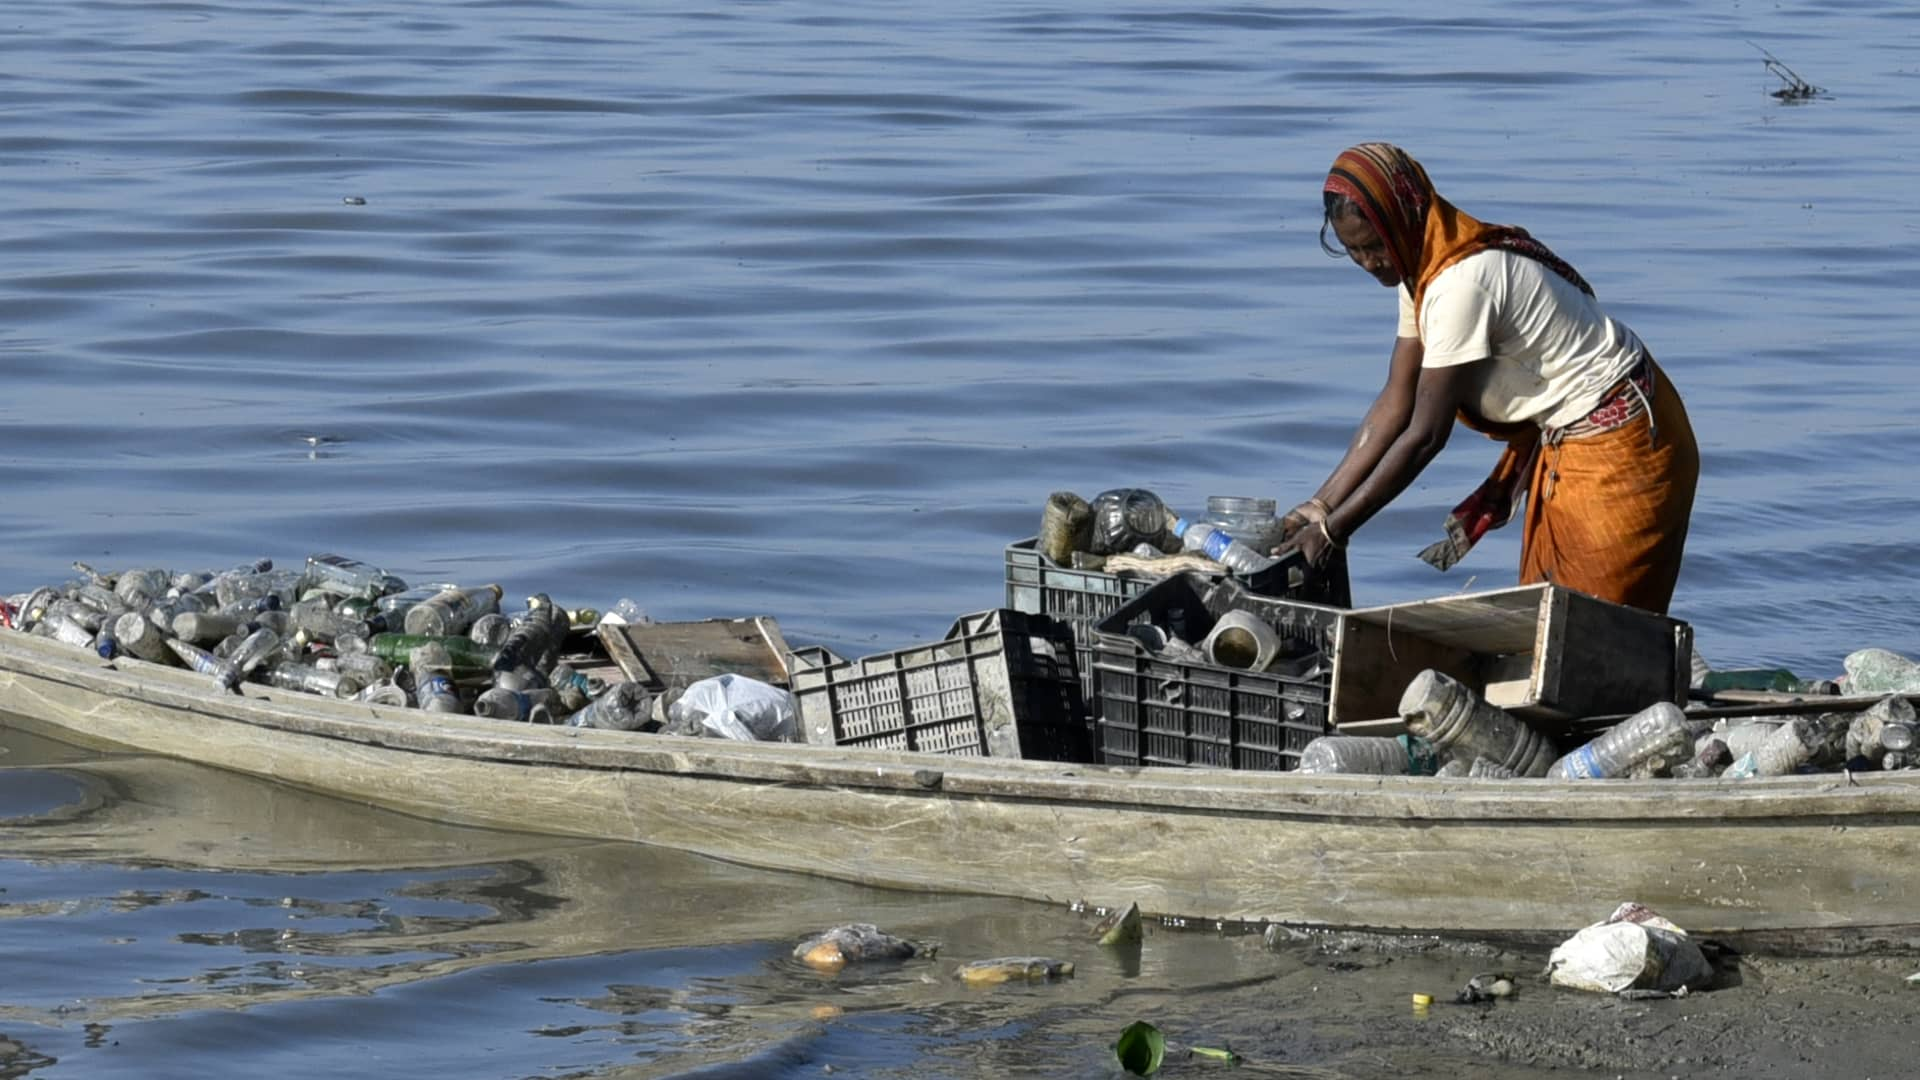 A women rag picker collecting plastic bottle and other plastic materials in a boat from the bank of Brahmaputra River in Guwahati, Assam, India on Monday, October 29, 2018.